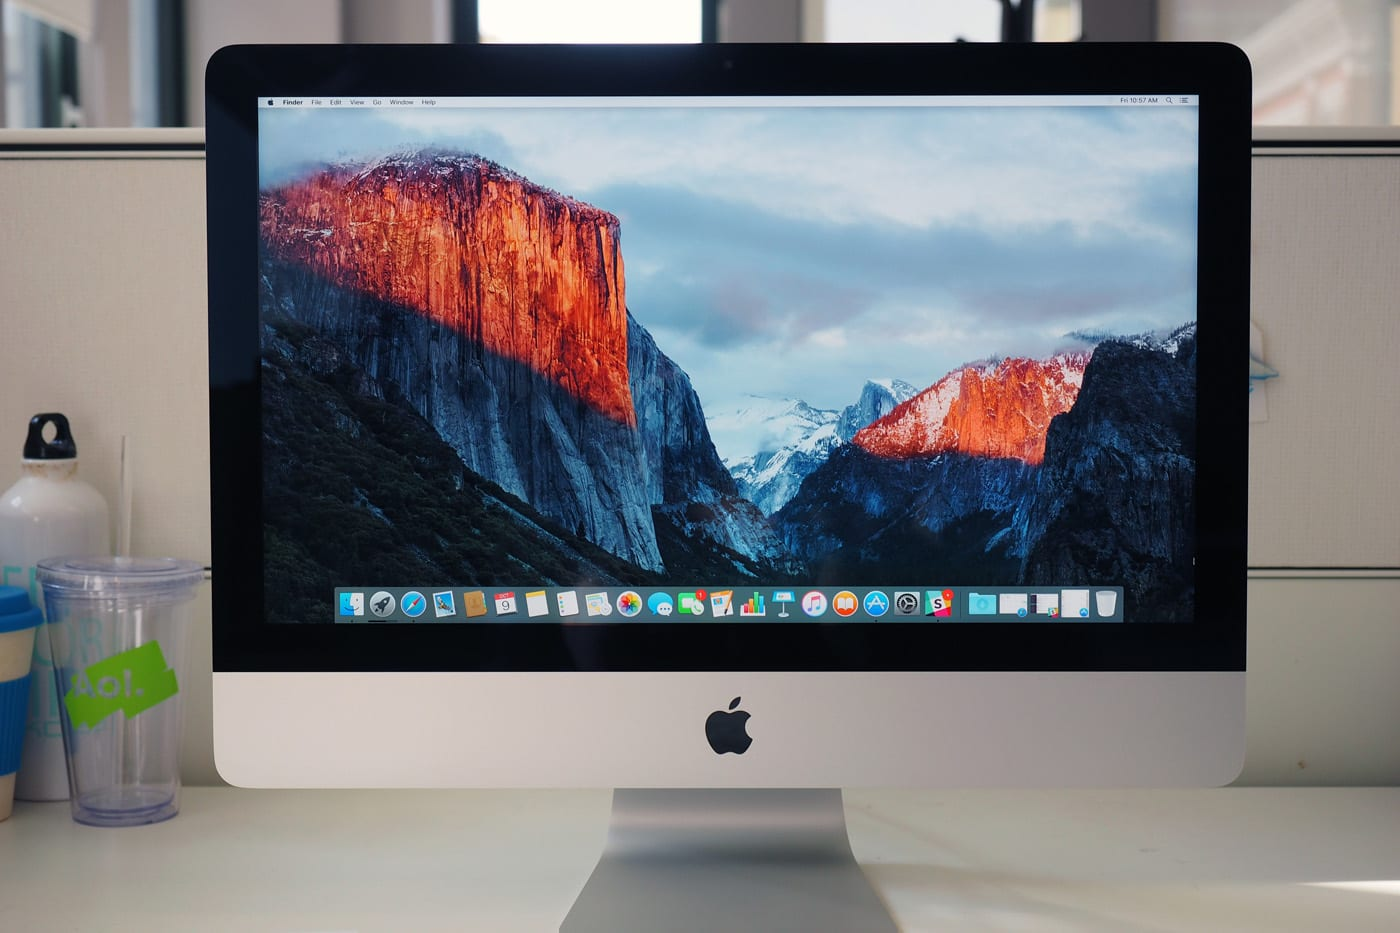 Apple Imac Review 215 Inch 2015 4k Is Optional Faster Hard Drives 10 Leds Shouldnt Be